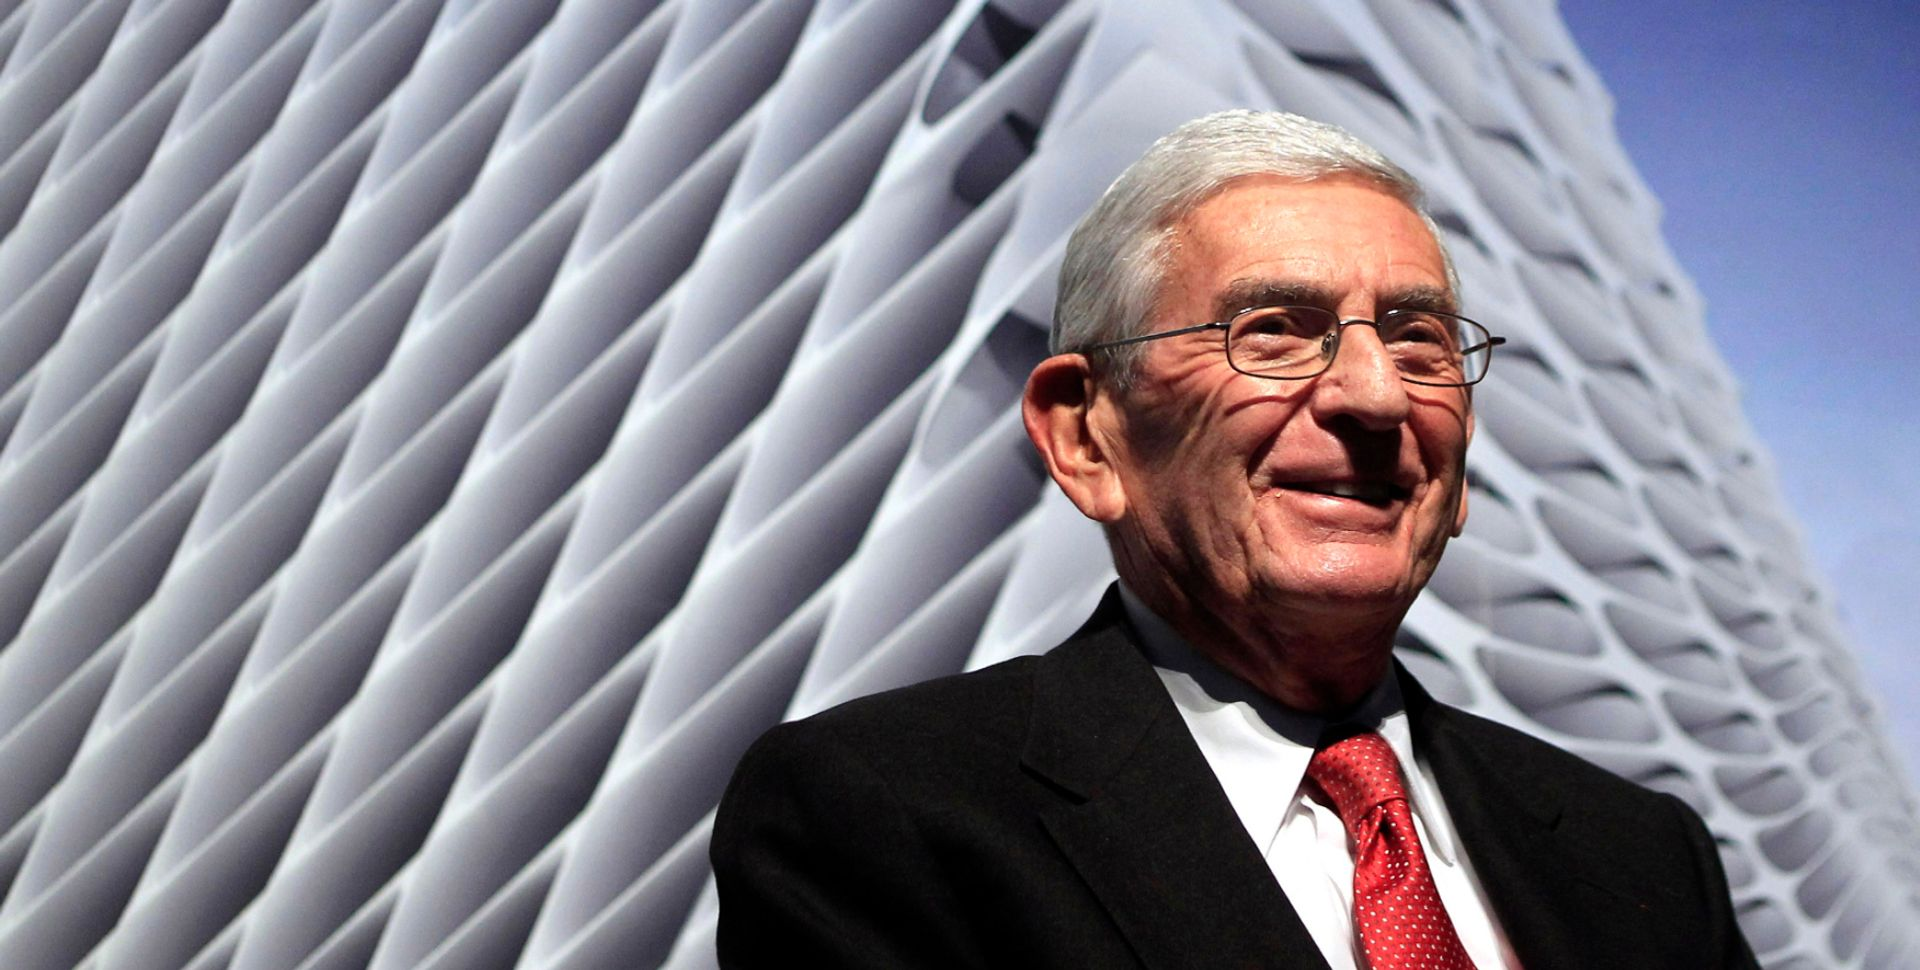 Billionaire Eli Broad attends the unveiling of the Broad Art Foundation contemporary art museum designs in Los Angeles in 2011 (AP Photo/Jae C. Hong)